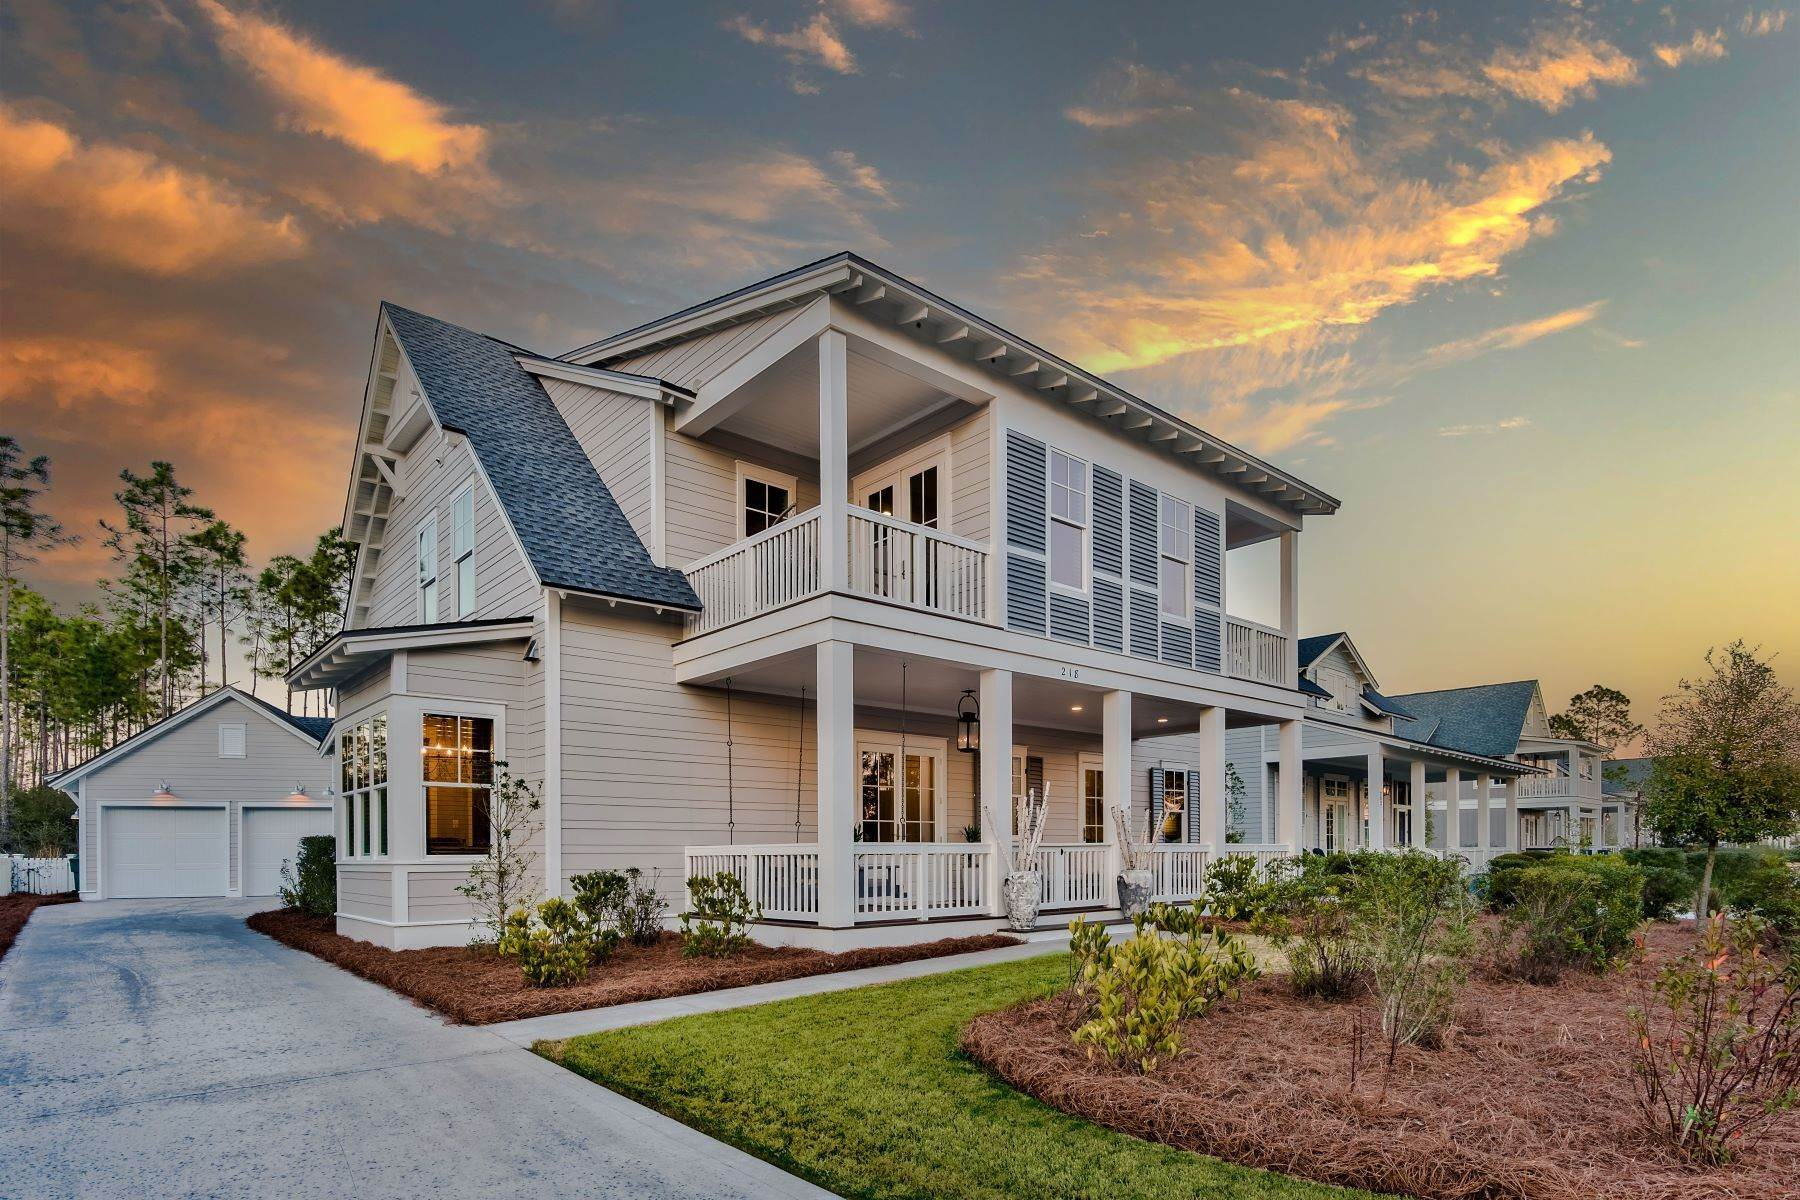 Single Family Homes for Sale at One-of-a-kind Custom Designer Home in Watersound Origins 218 North Splash Drive Inlet Beach, Florida 32461 United States